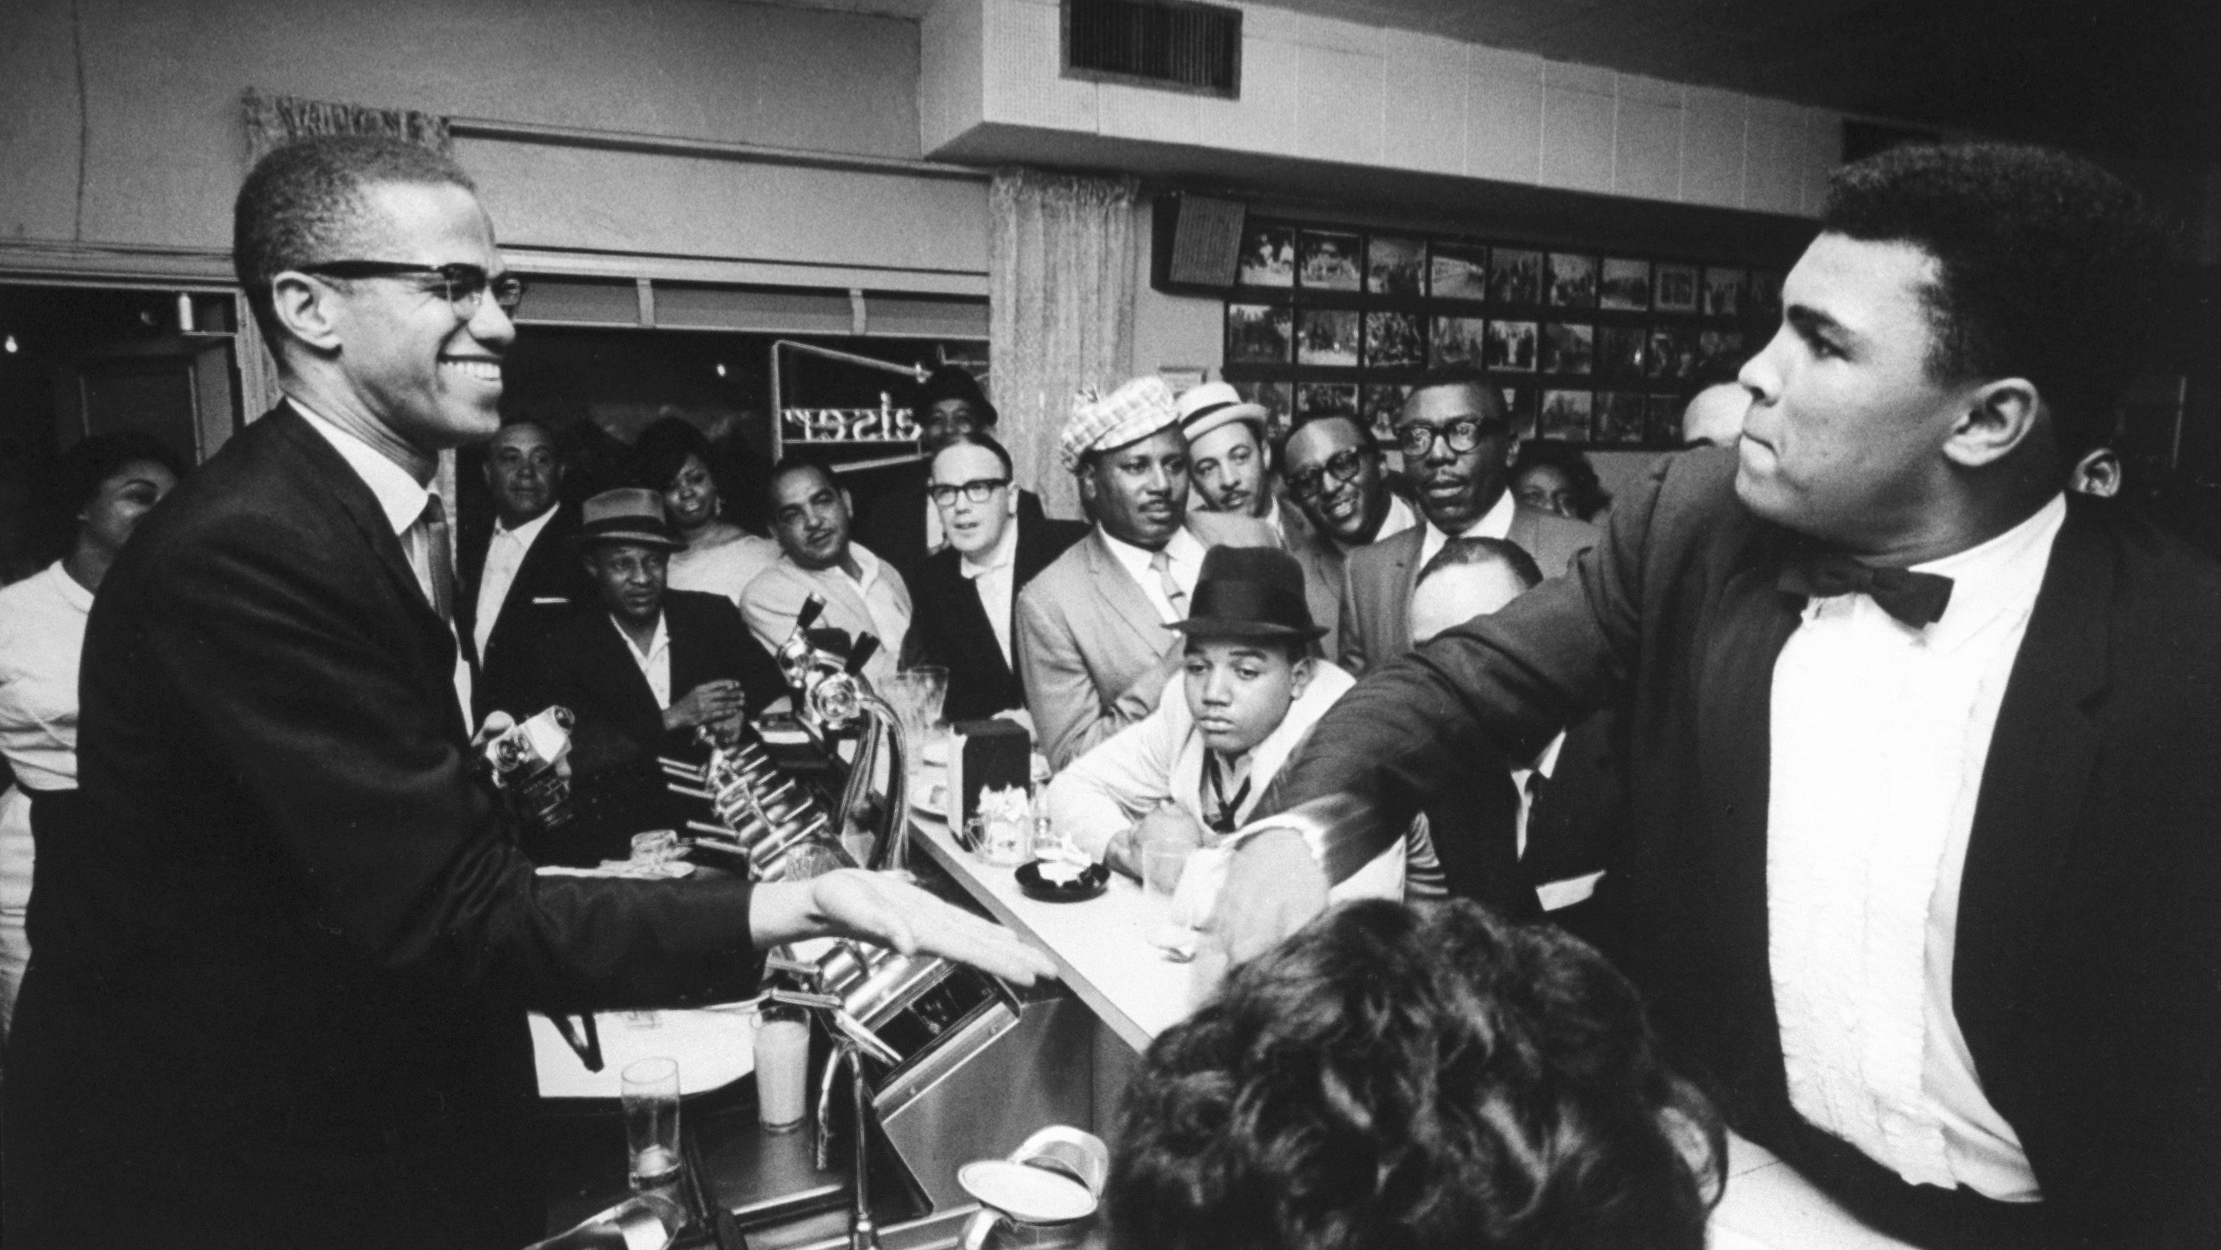 March 1964 - Miami: Black Muslim leader Malcolm X (L), behind soda fountain, with tux-clad Cassius Clay (now Muhammad Ali) (R), while surrounded by jubilant fans after he beat Sonny Liston for the heavyweight championship of the world.